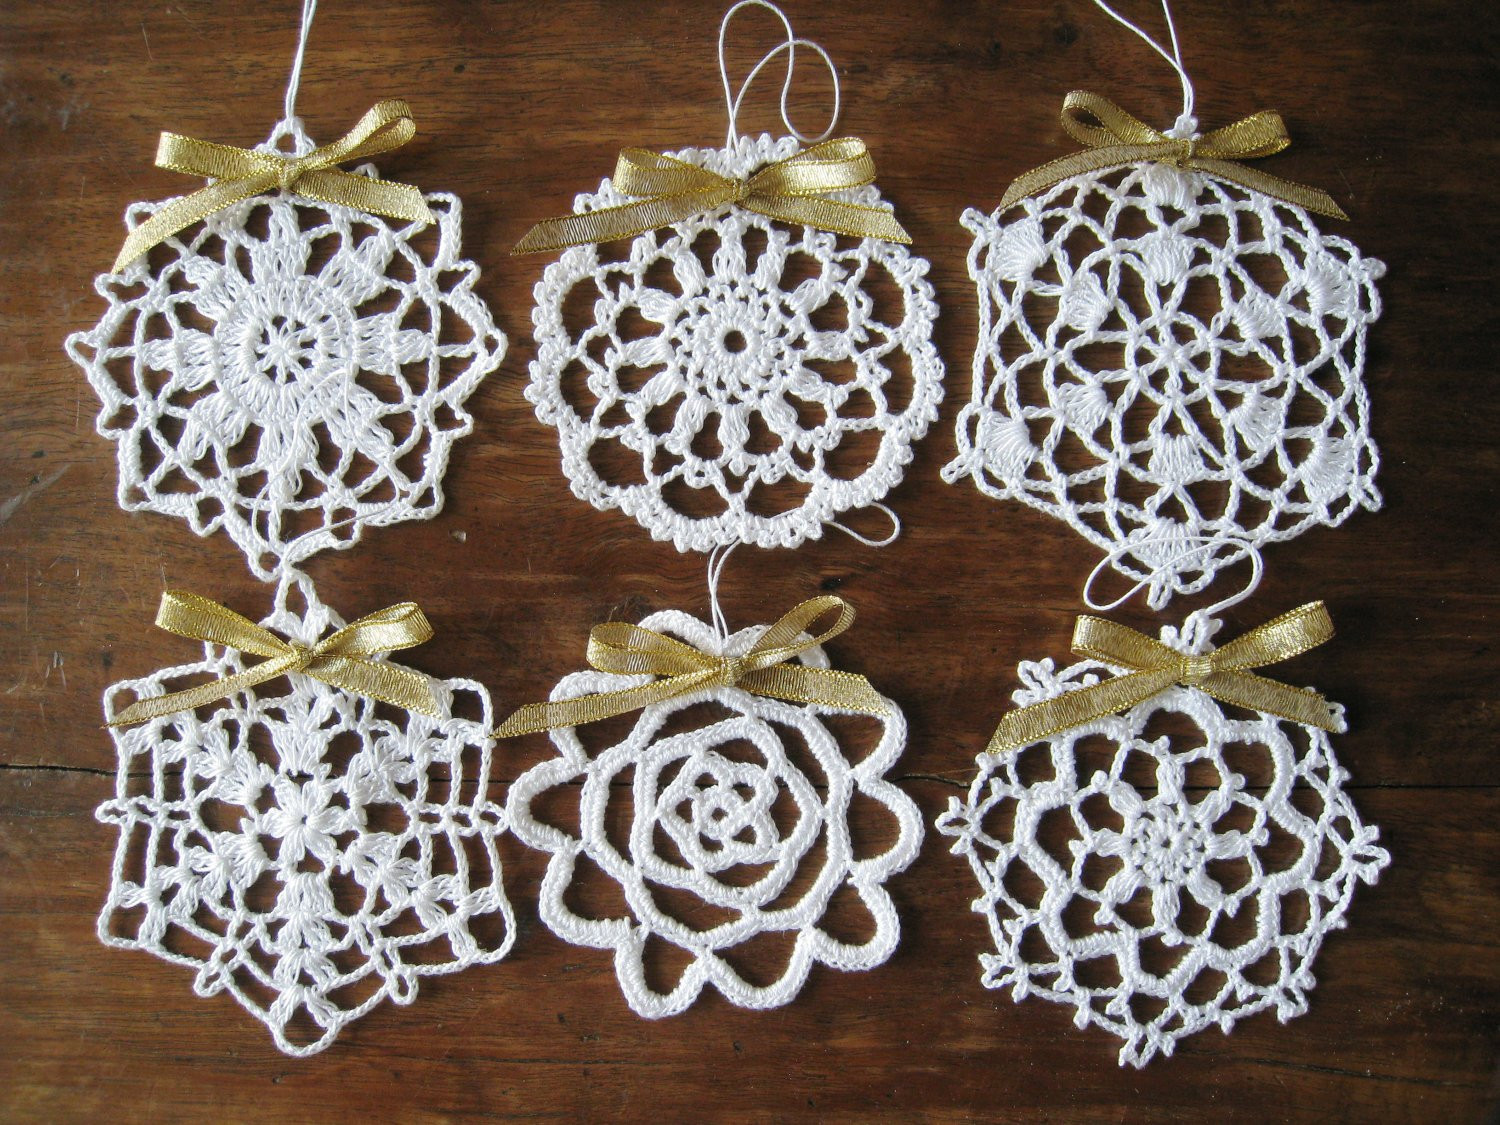 6 Different Crochet Snowflake Ornaments White Wall Hanging